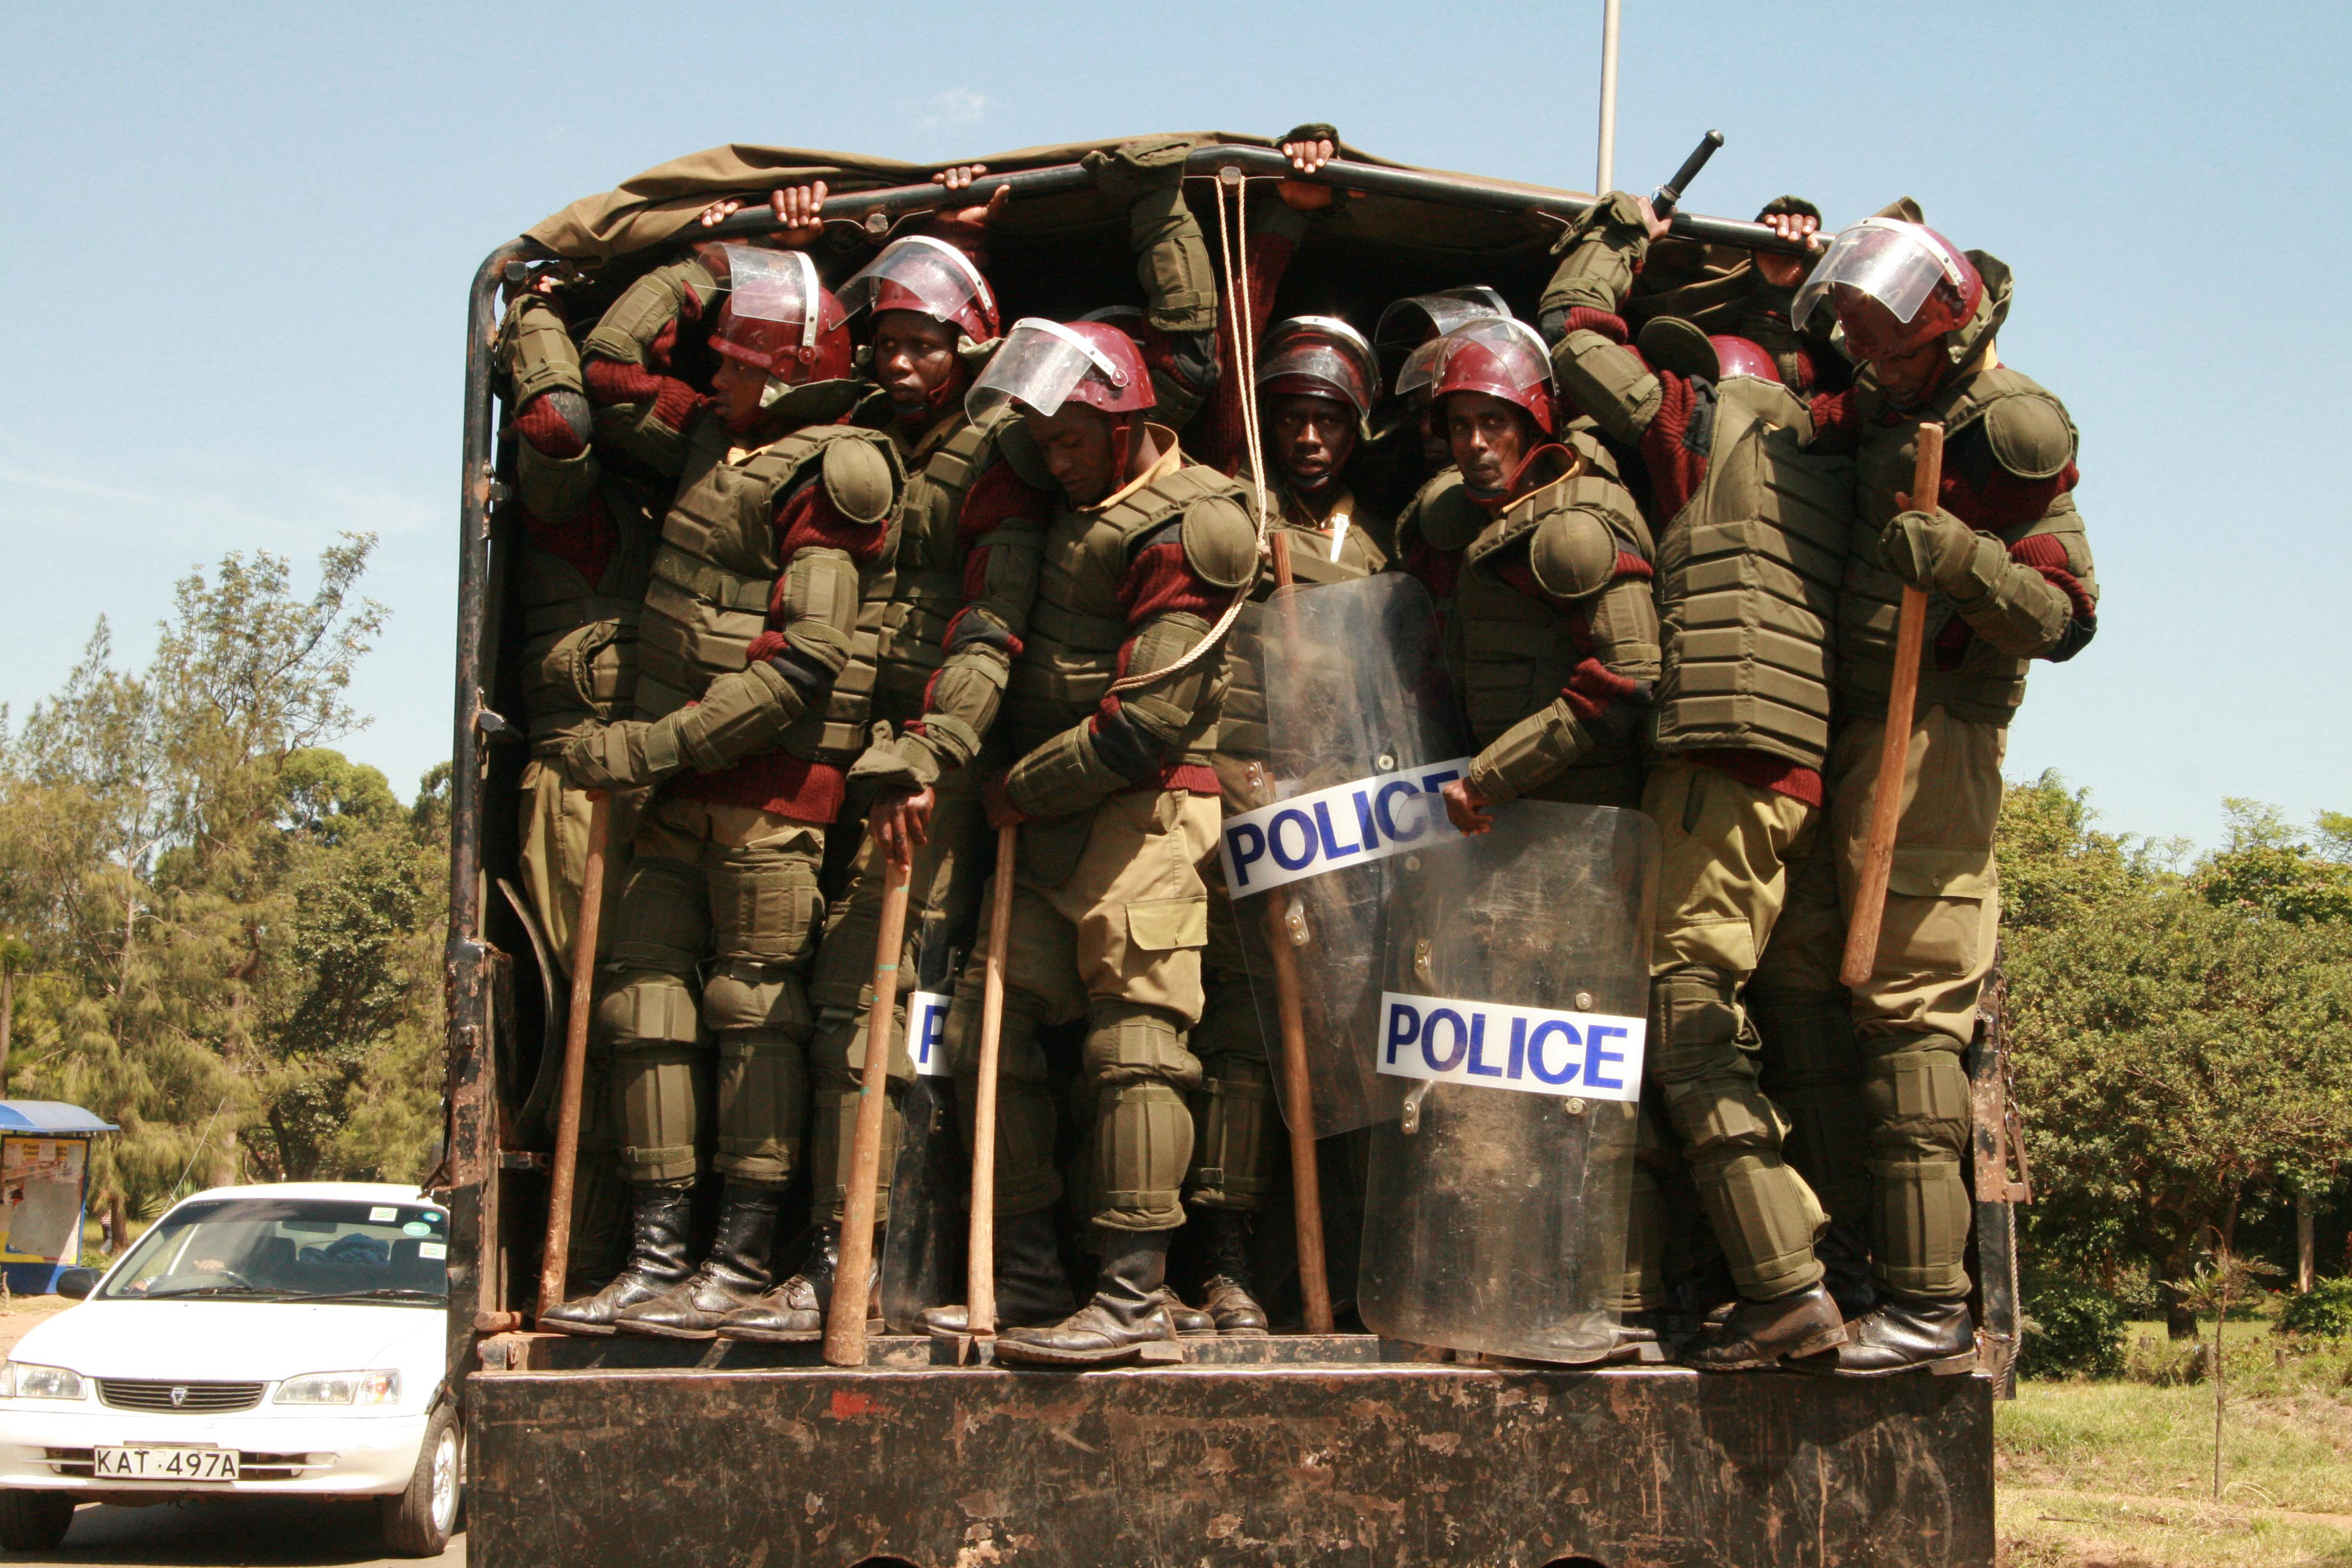 Anti-riot police brought in to control demonstrators during a funeral service for people killed in post-election violence in Ligi Ndogo, Nairobi, Kenya, January 2008.